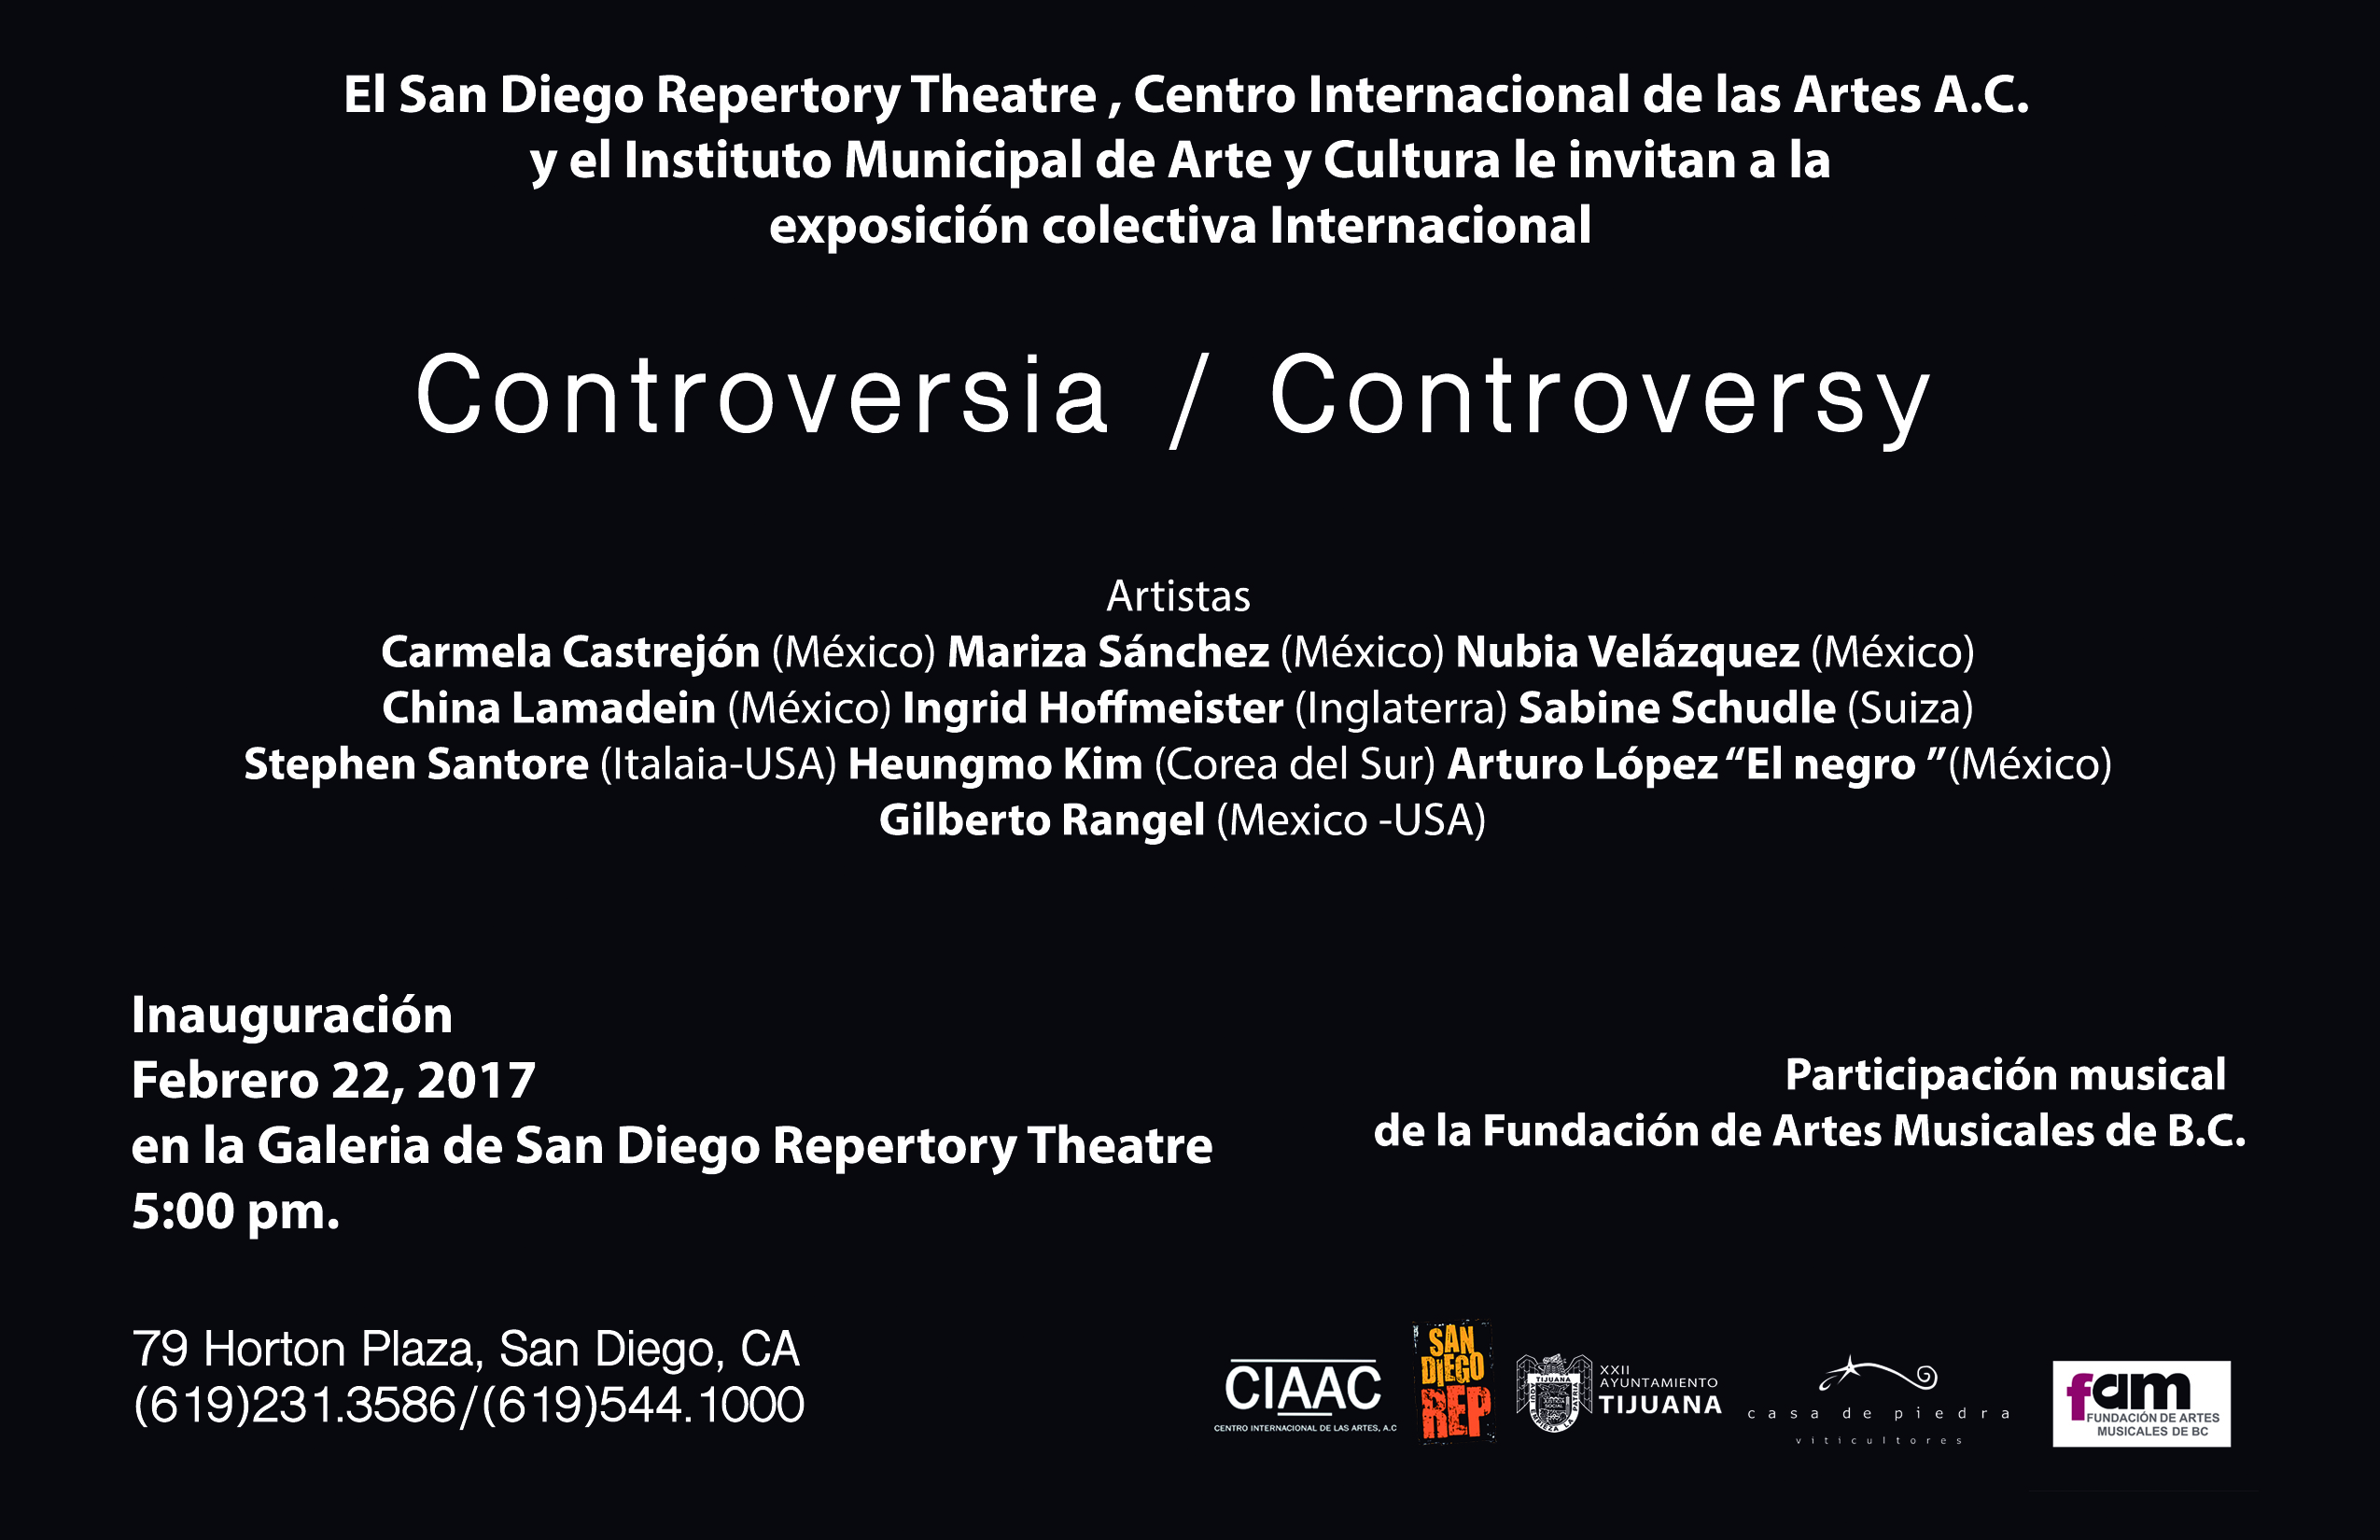 Invitation to Controversia/Controversy